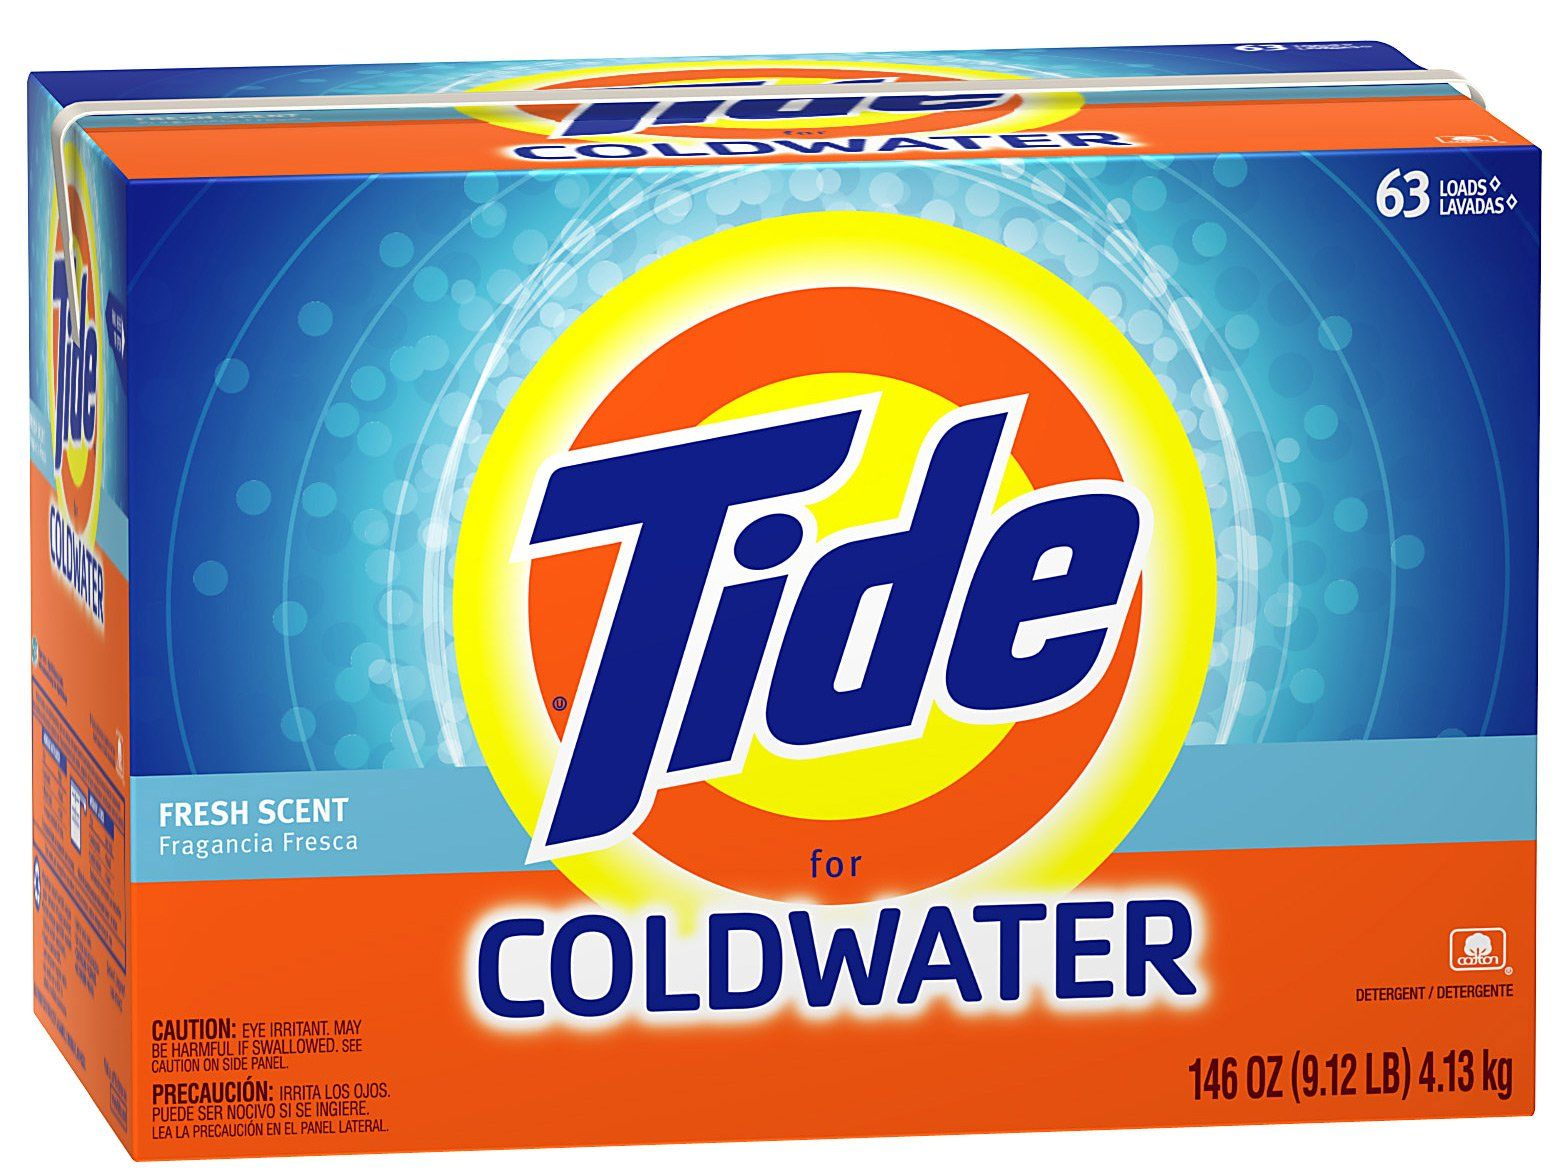 Fake Tide Coldwater He Tide Laundry Detergent Best Laundry